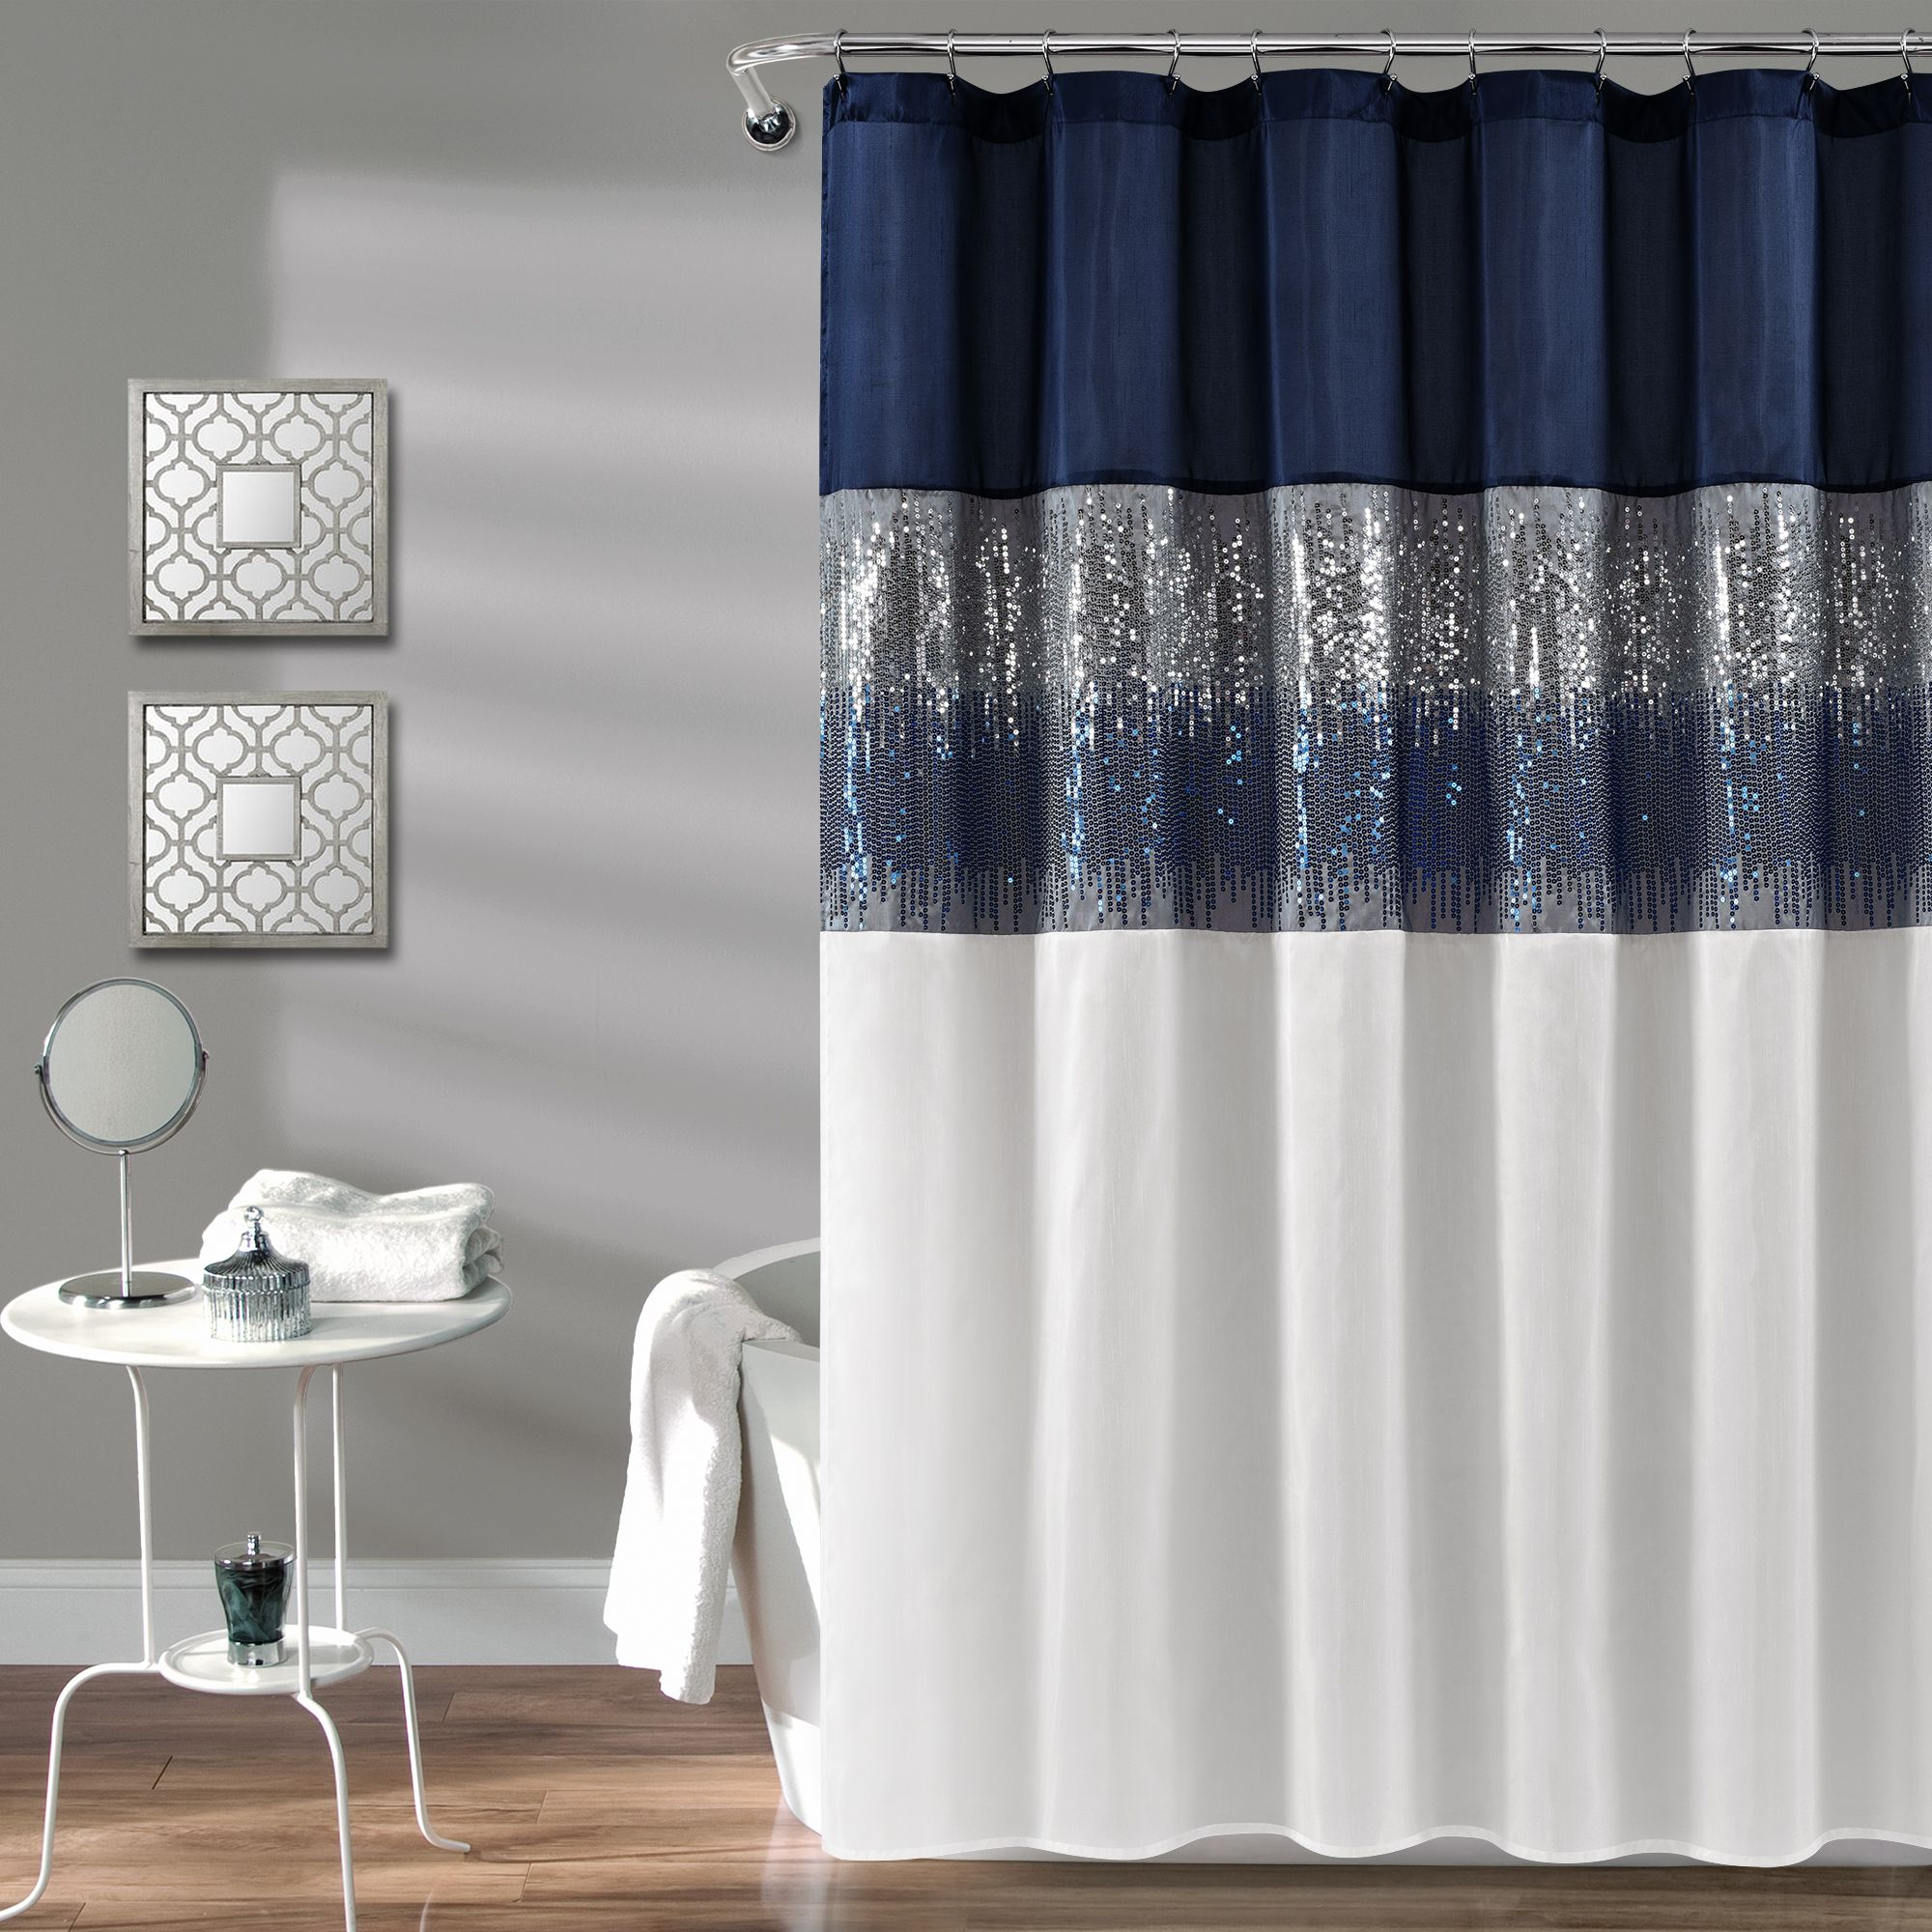 Night Sky Shower Curtain In 2020 Black Curtains Fabric Shower